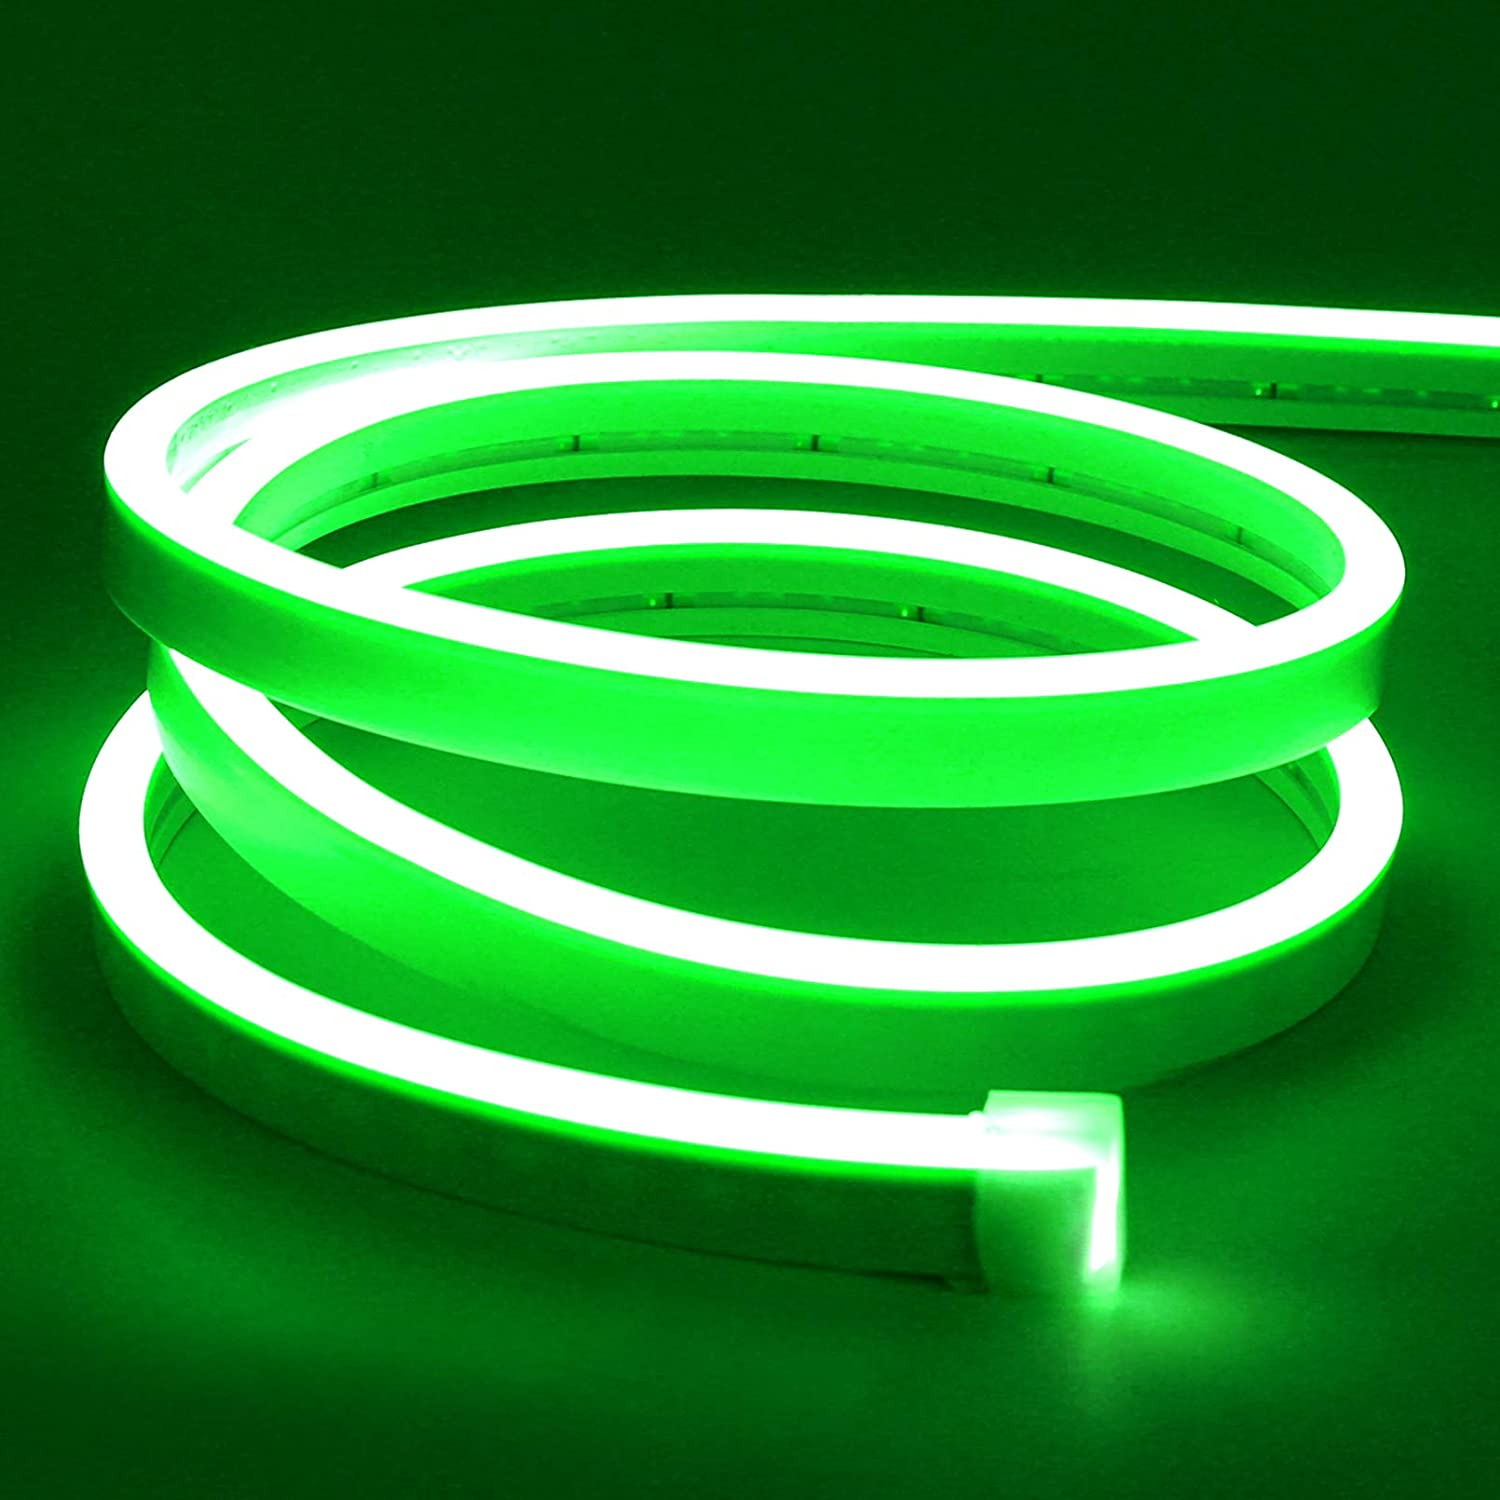 Lamomo LED Neon Flex, 16.4ft/5m Green Neon Light Strip, 12V Flexible Waterproof Neon LED Strip, Silicone LED Neon Rope Light for Kitchen Bedroom Indoor Outdoor Decoration (No Power Adapter)